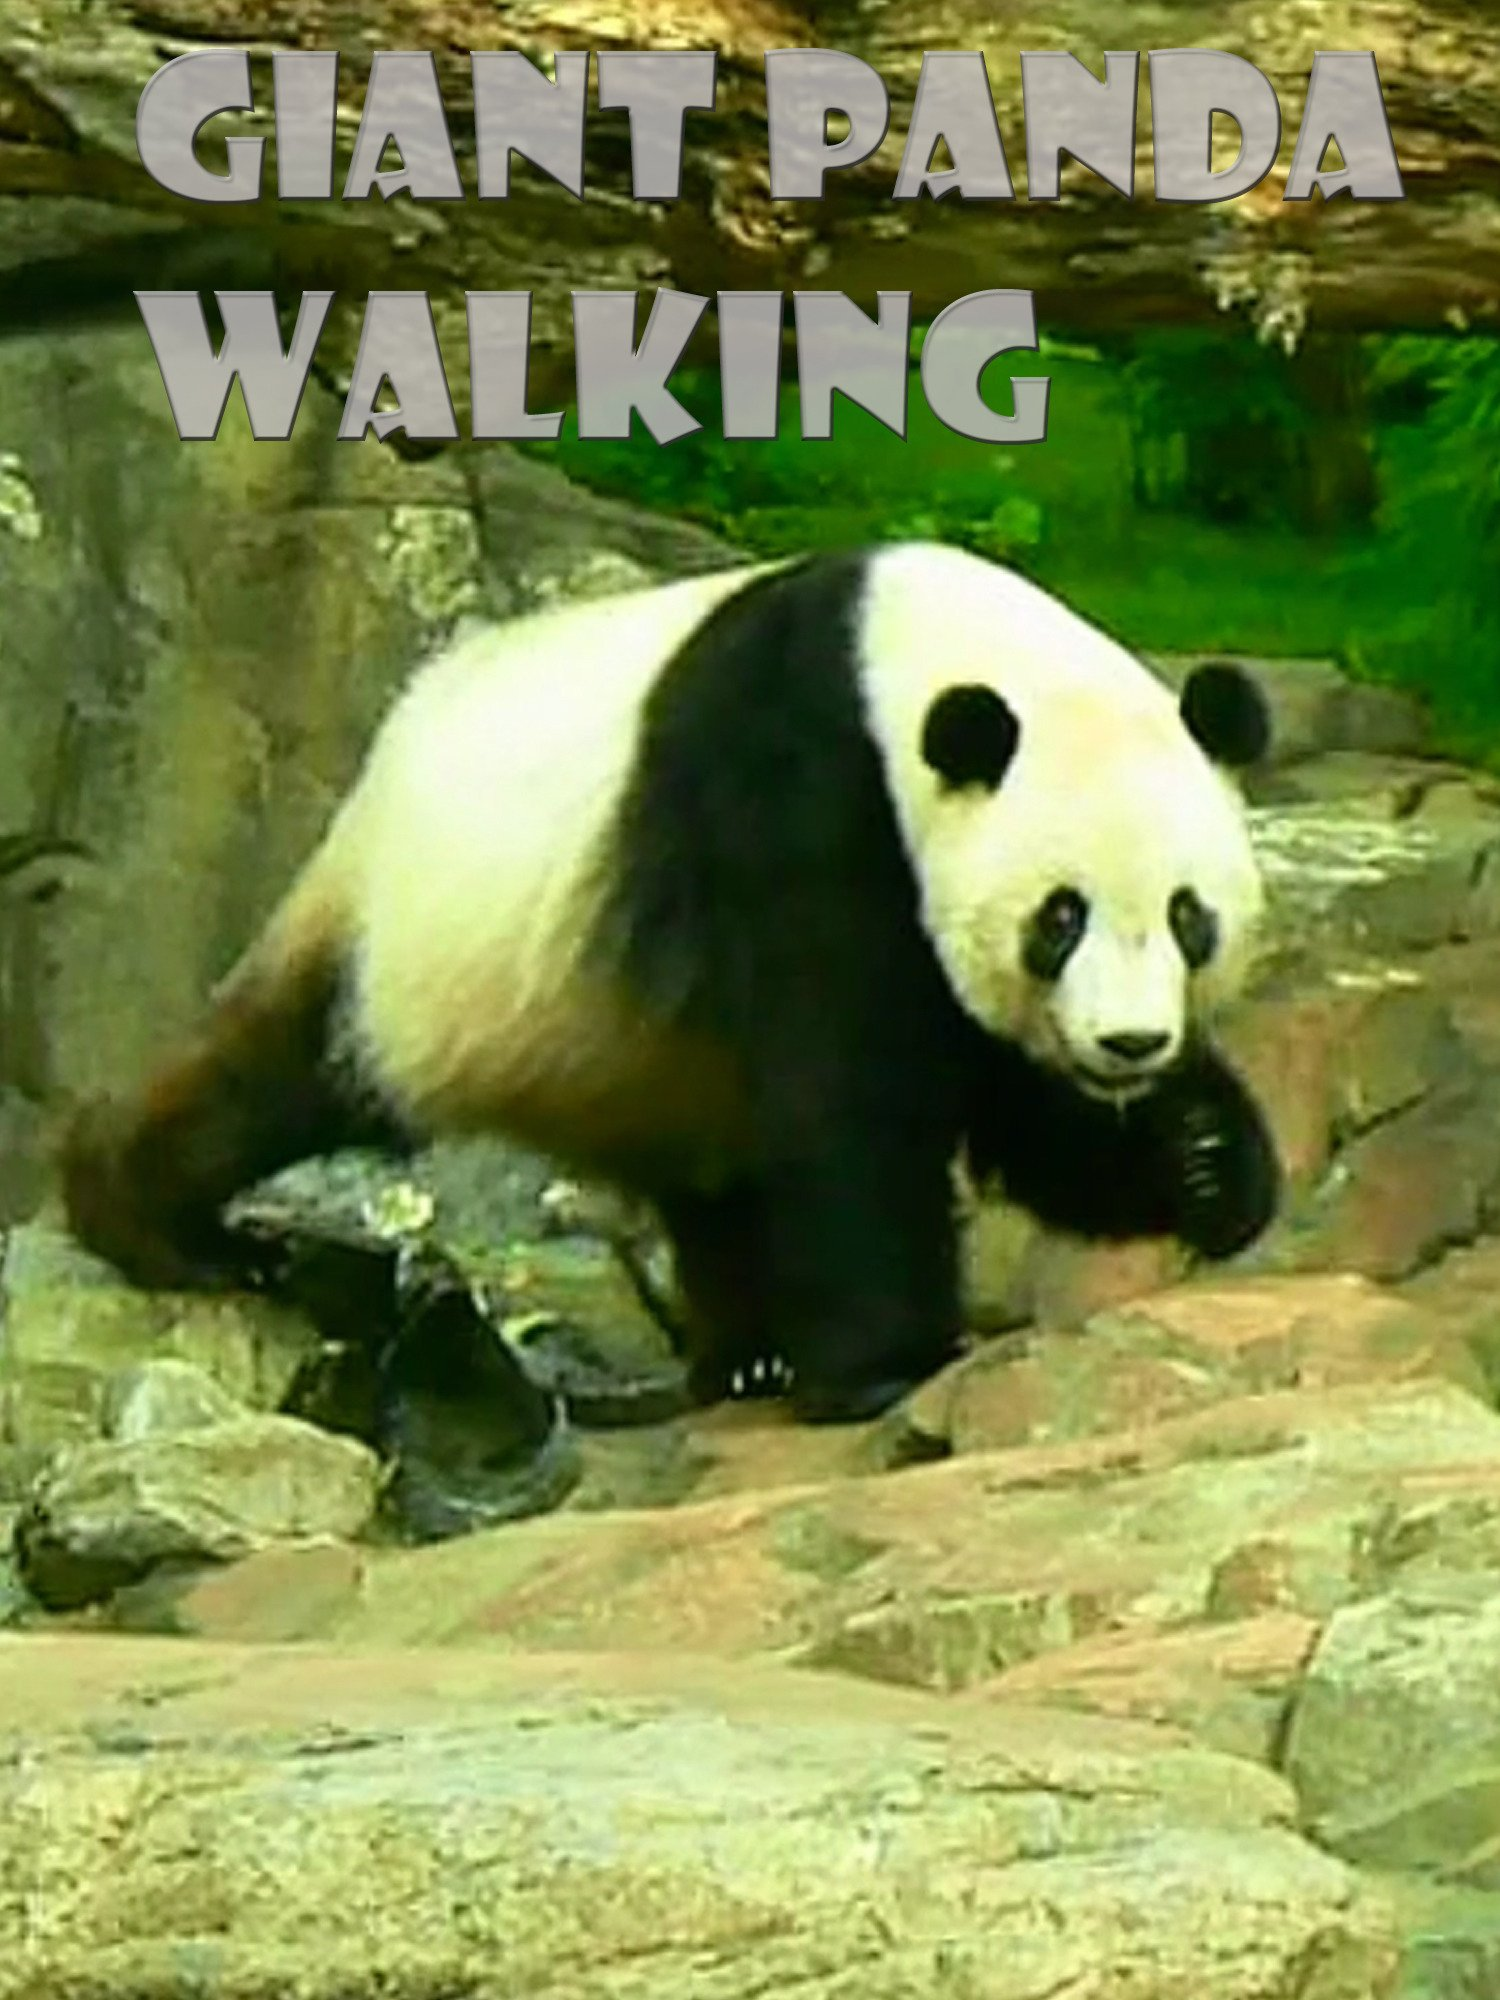 Clip: Giant Panda Walking